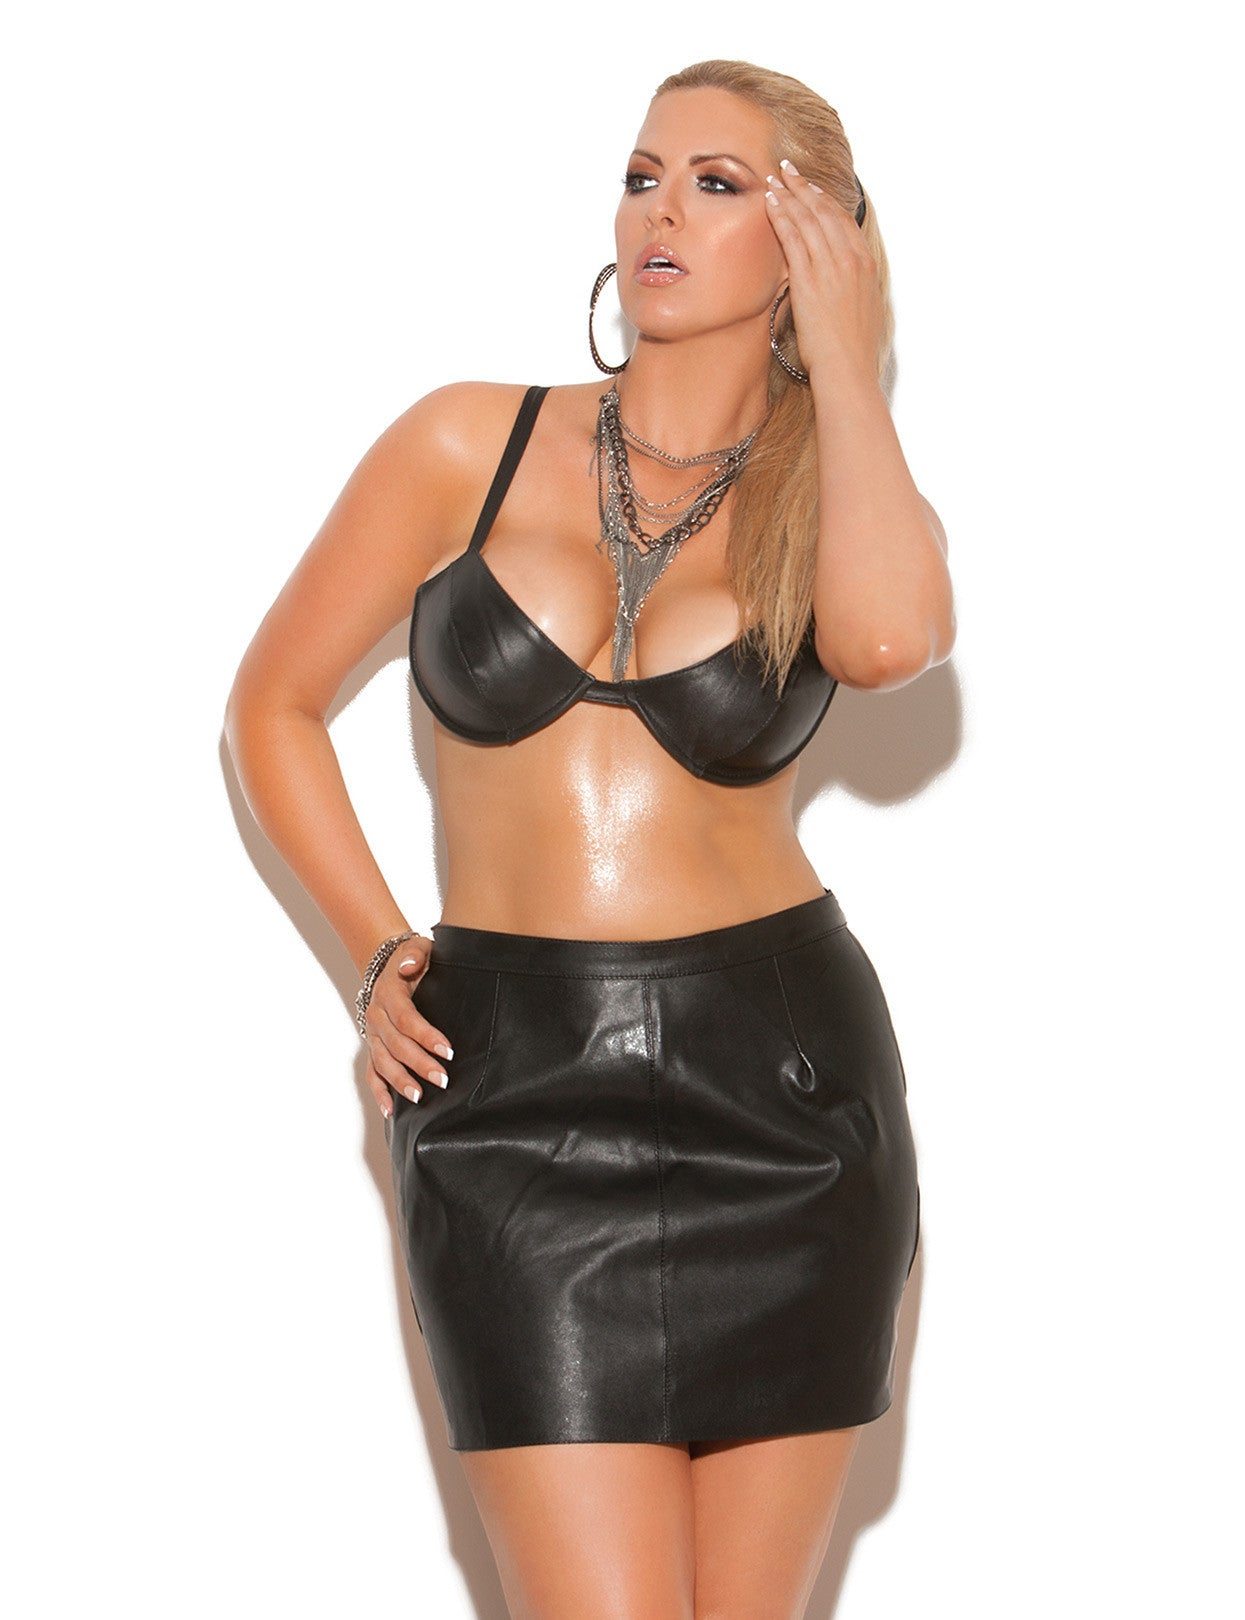 Plus Size Leather Spanking Skirt - just damn sexy  - 1